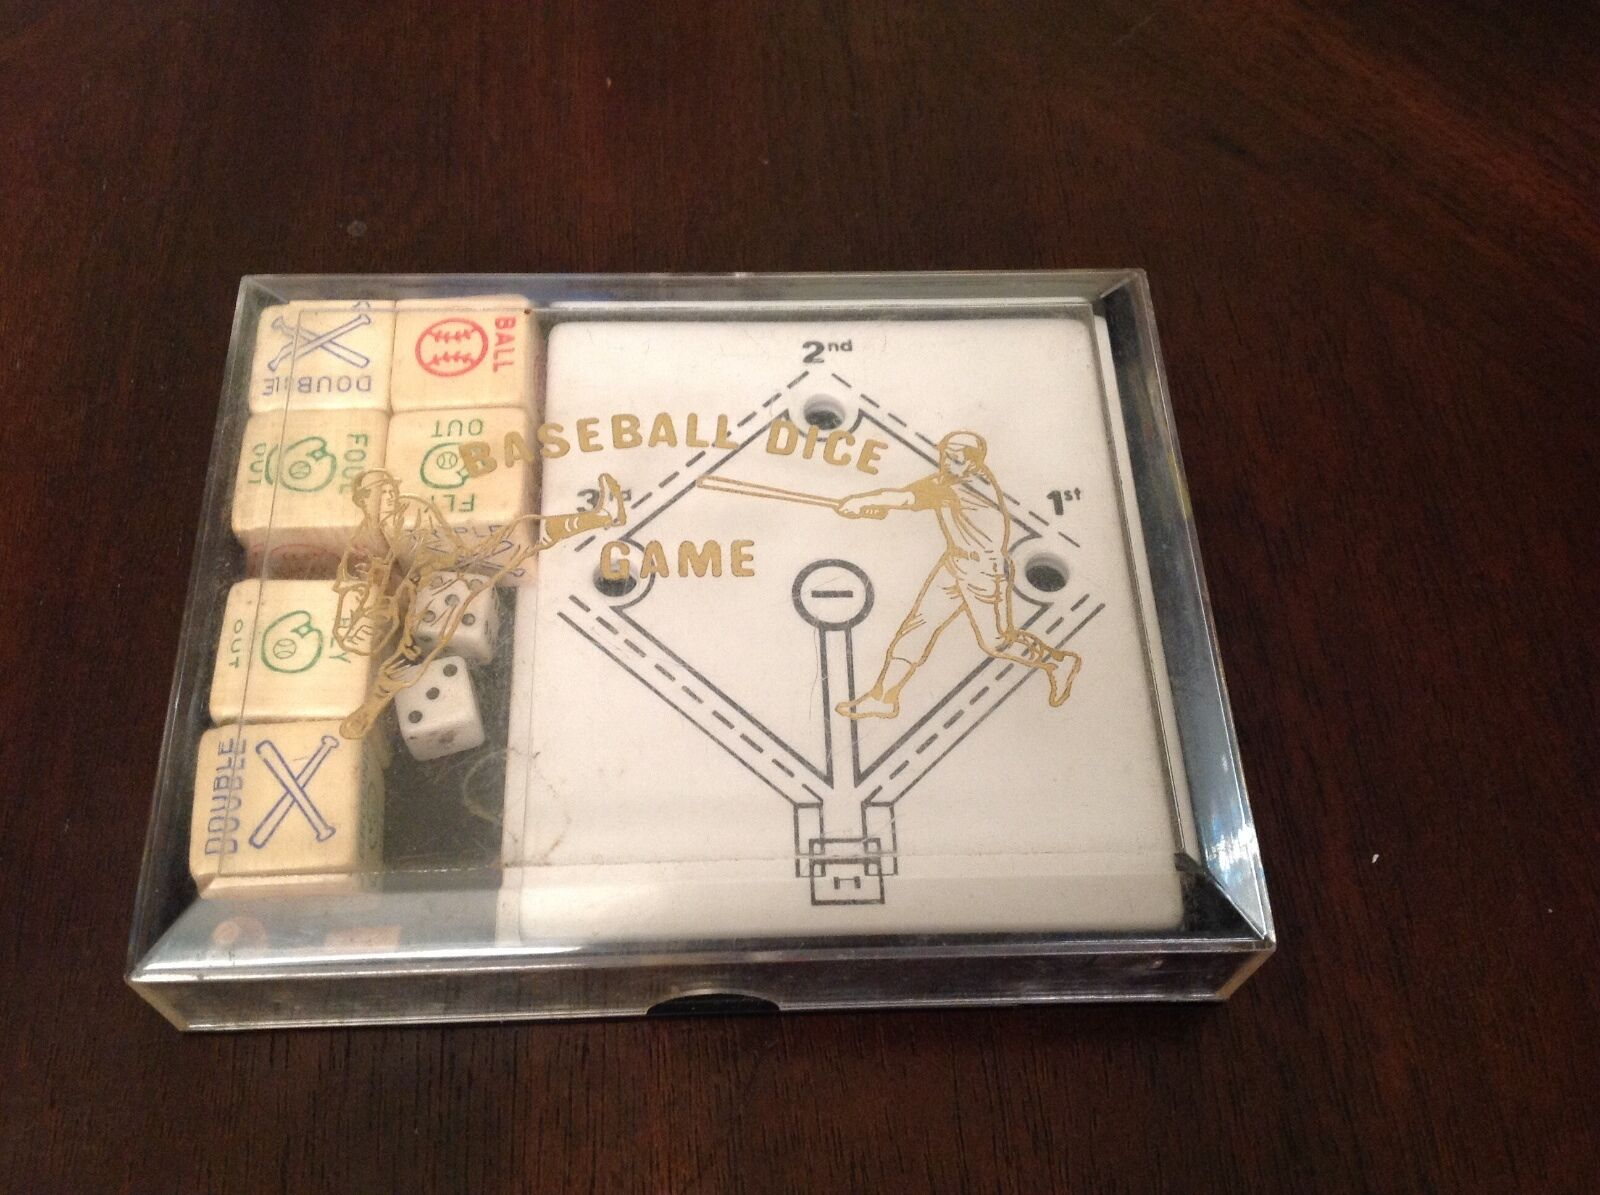 Baseball Dice Game. Chula Vista Novelty Company. Dice Board, Pegs, Case